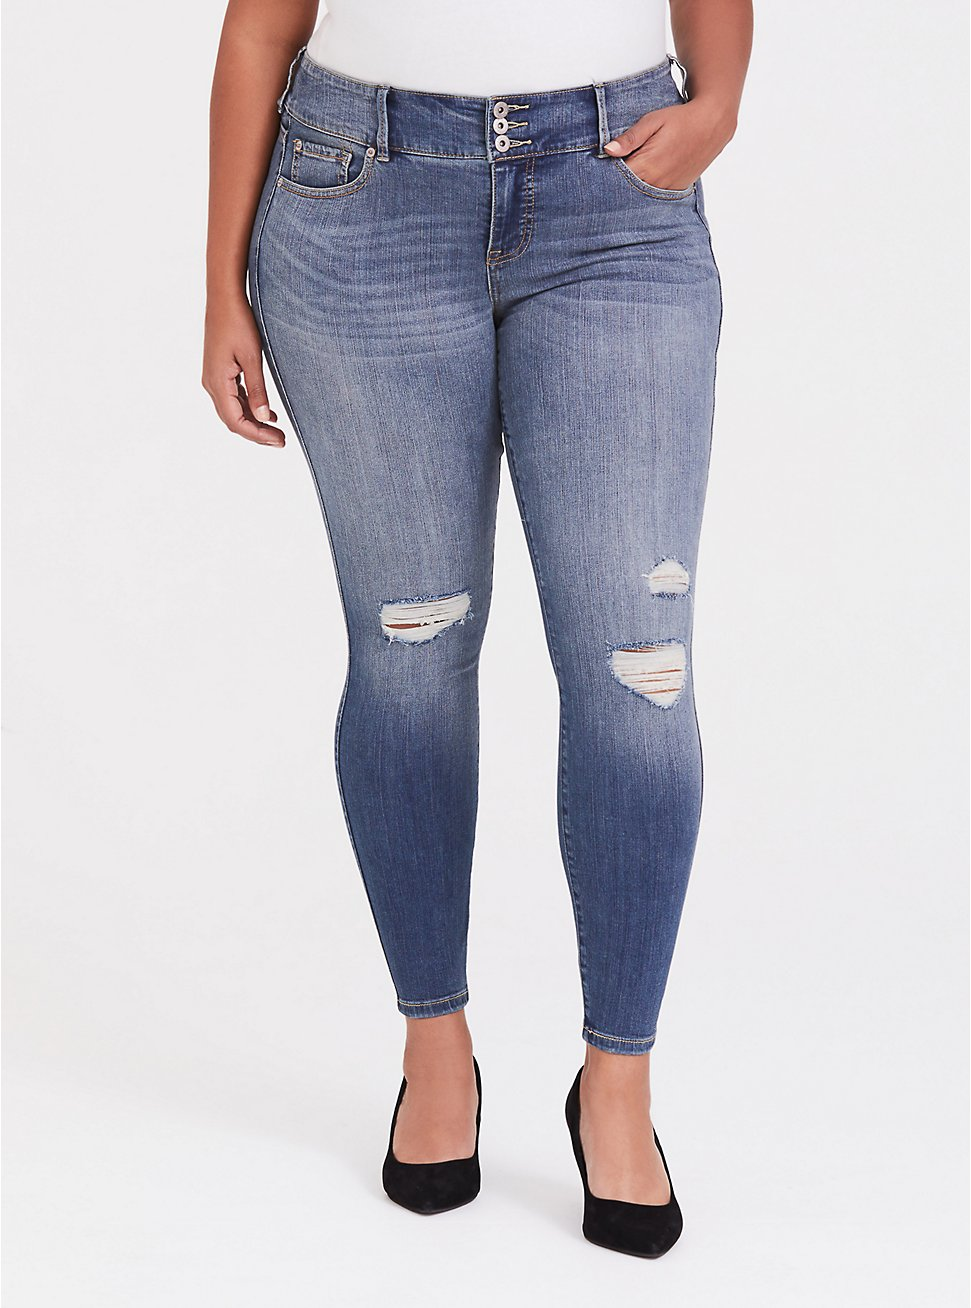 Jegging - Premium Stretch Medium Wash, , hi-res